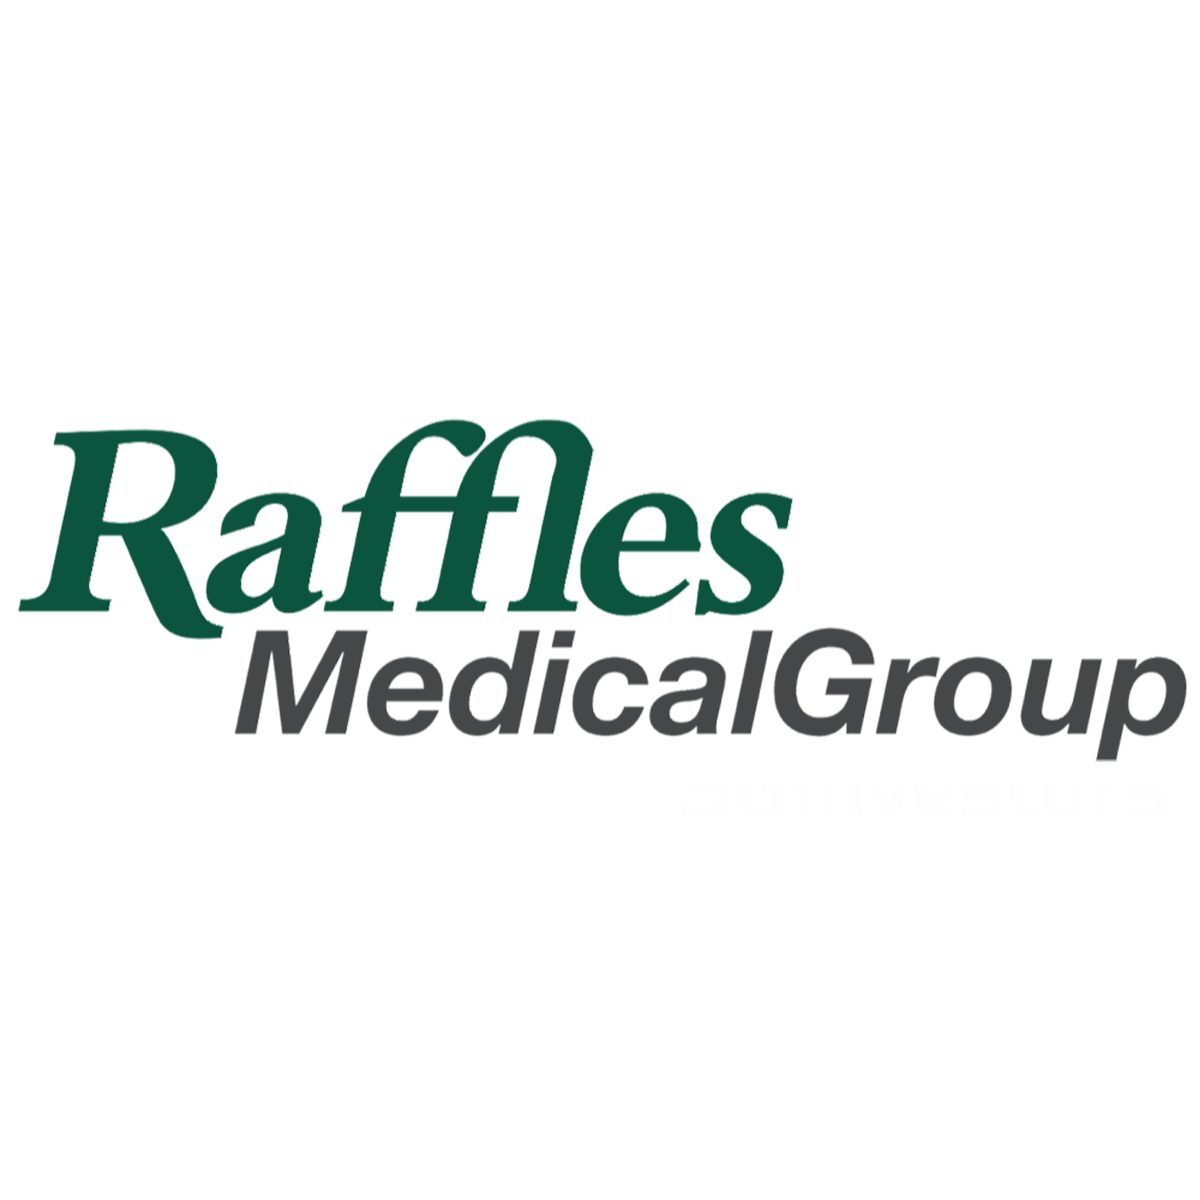 Raffles Medical Group (RFMD SP) - UOB Kay Hian 2017-08-01: 1H17 Slightly Below Expectations But Watch Out For 2018 Costs Ahead Of China Expansion